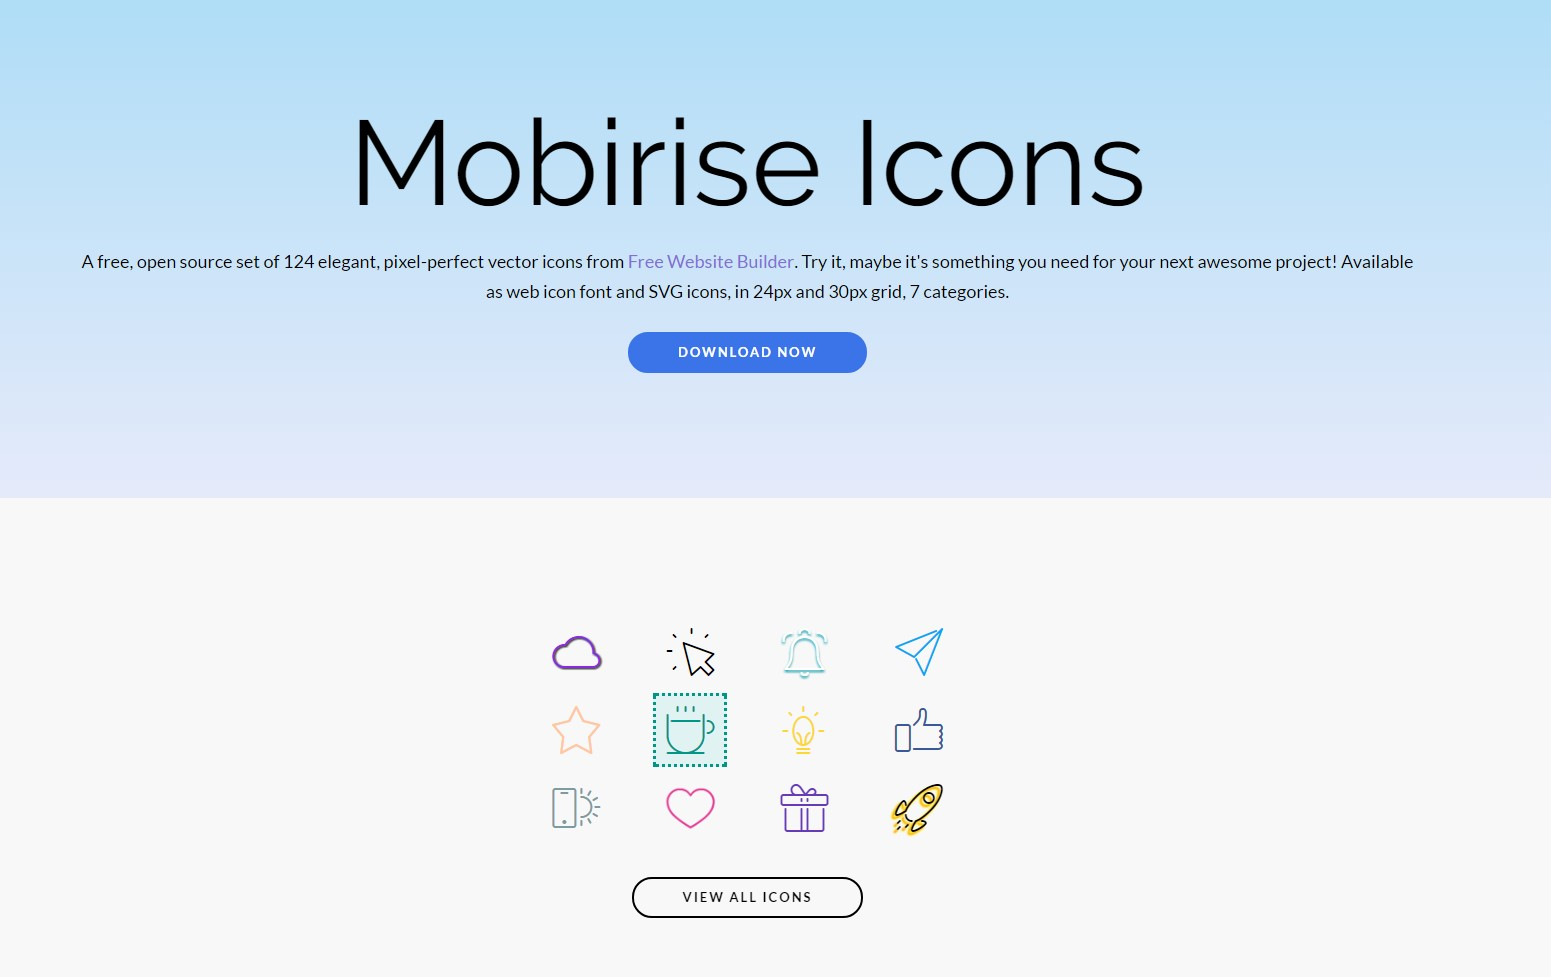 mobirise icons set